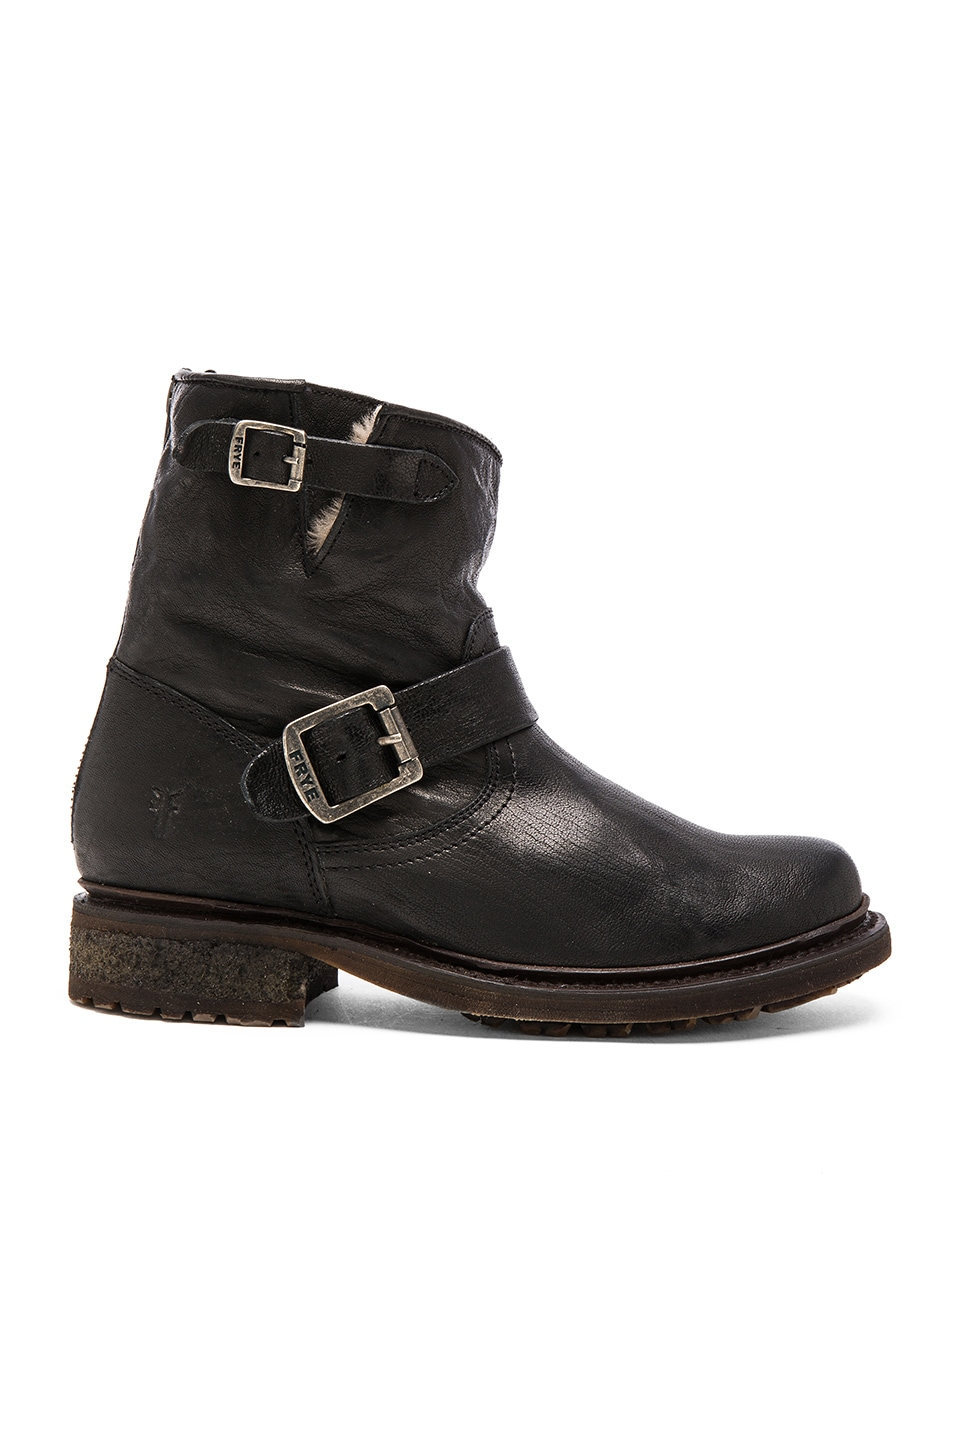 Valerie 6 Boot with Shearling Lining by Frye